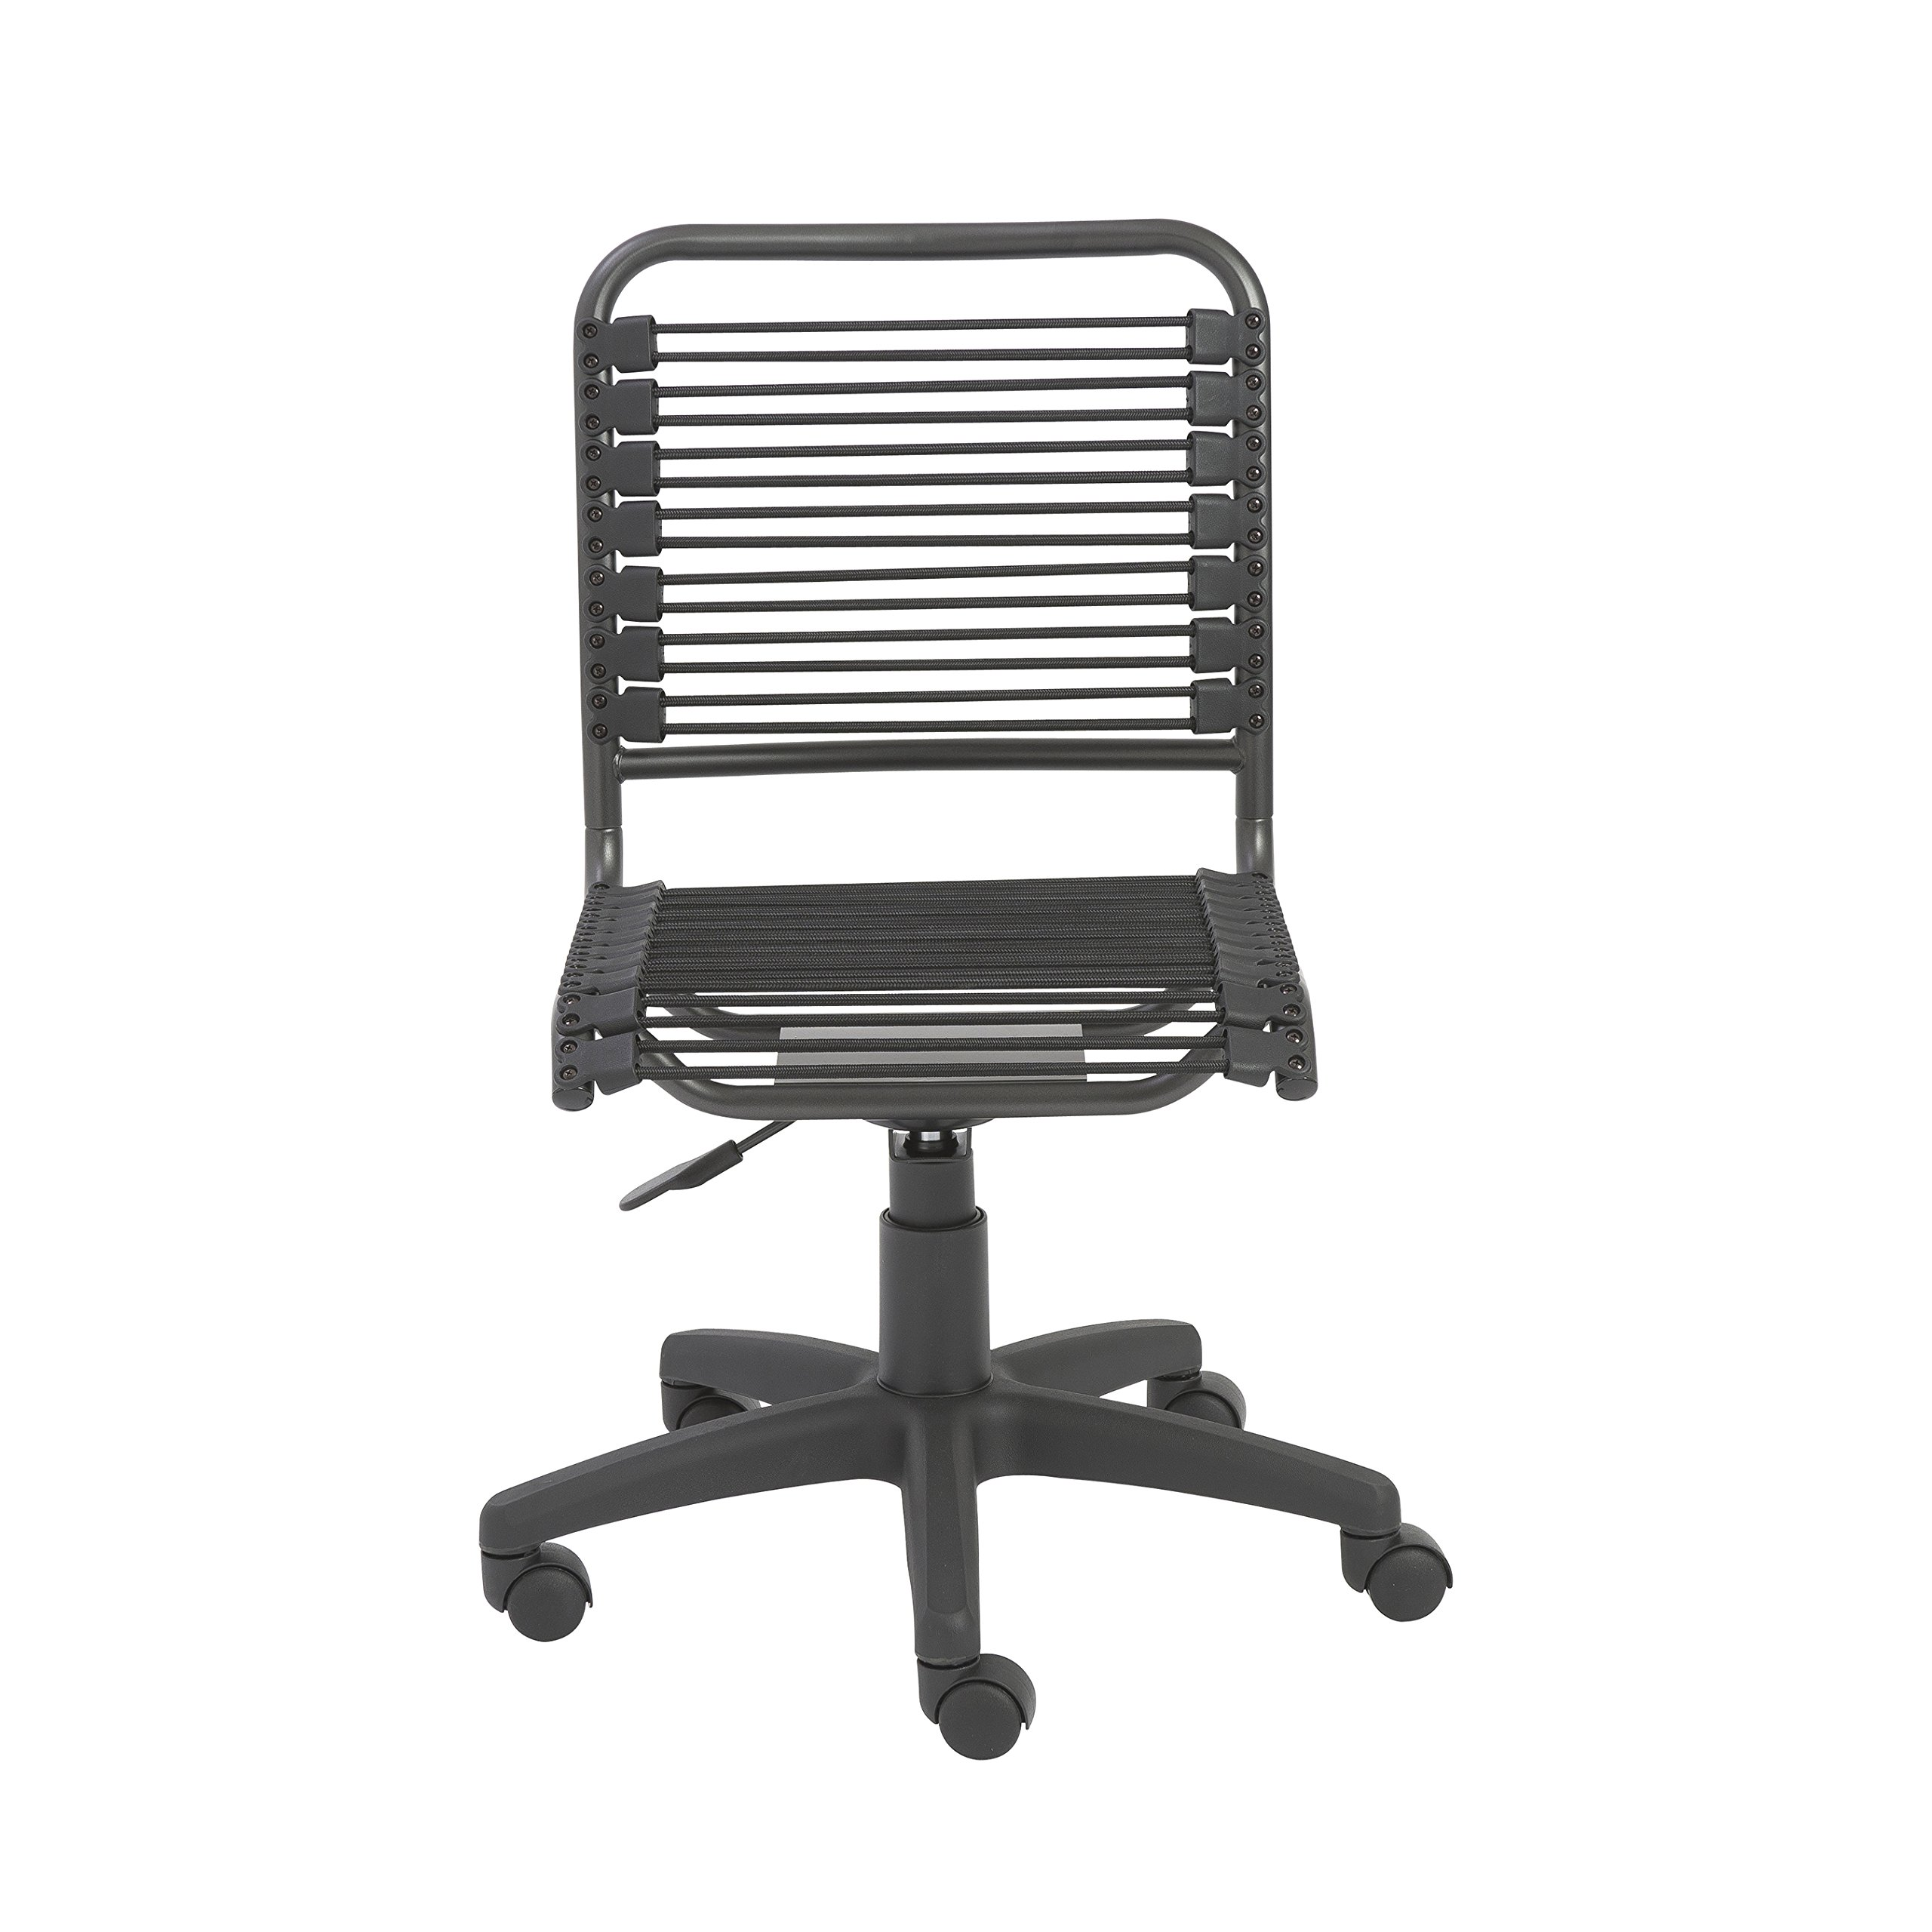 Euro Style Bungie Low Back Adjustable Office Chair, Black Bungies with Graphite Black Frame by Eurø Style